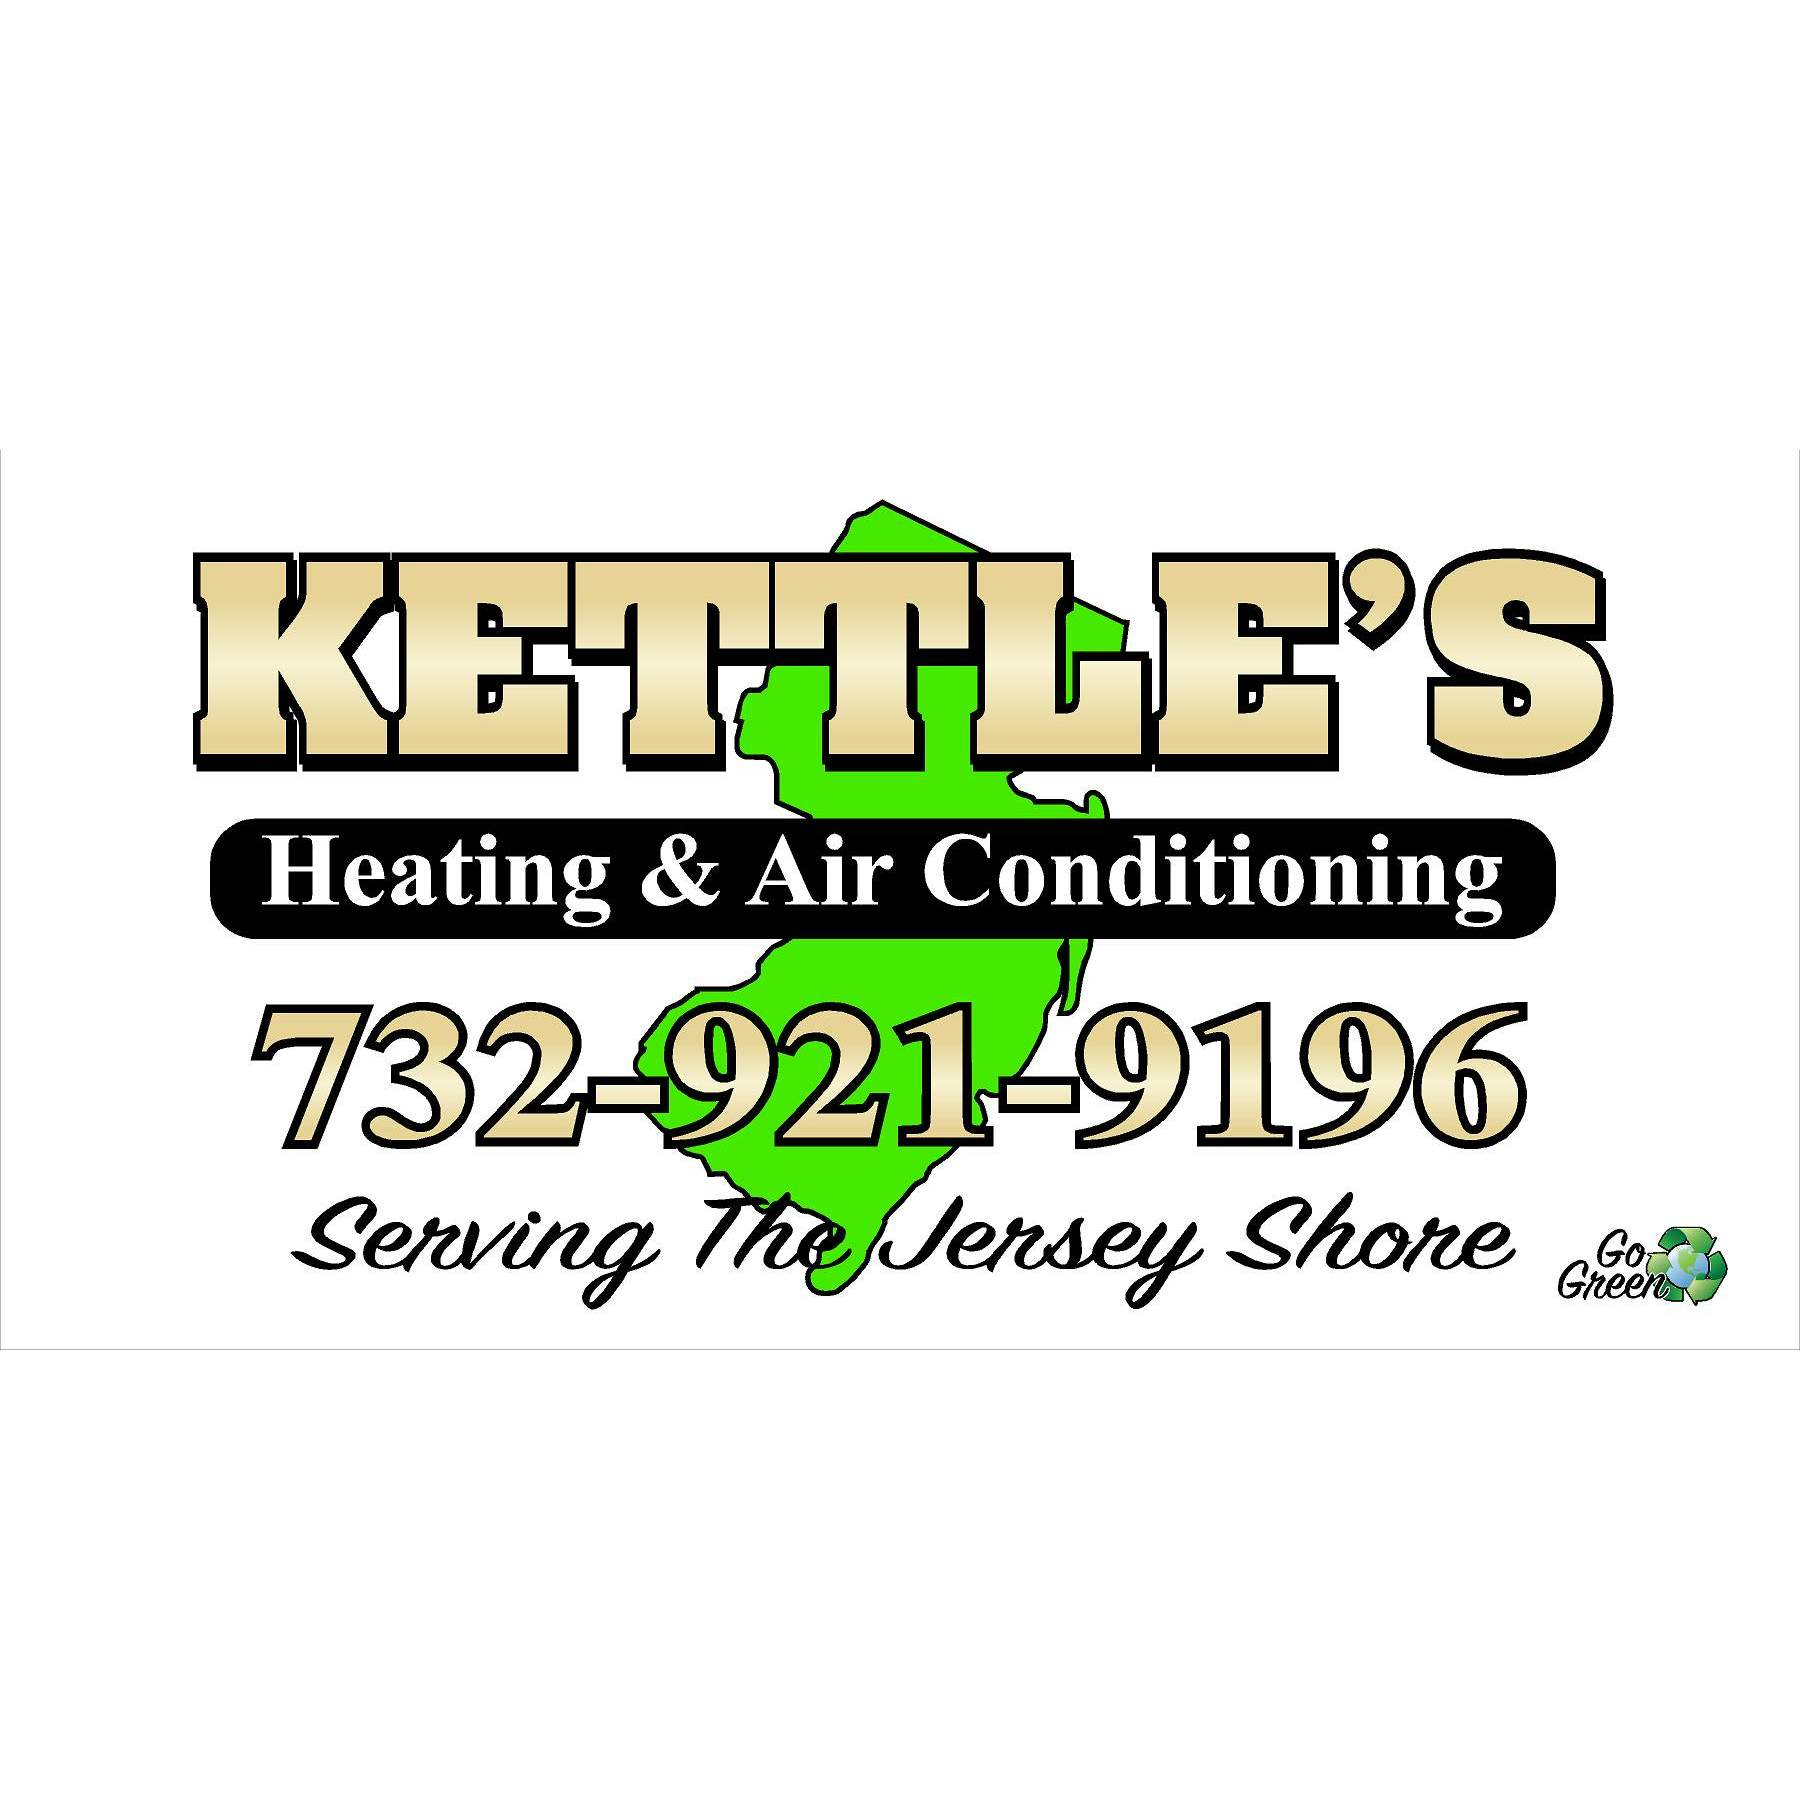 Kettle's Heating & Air Conditioning